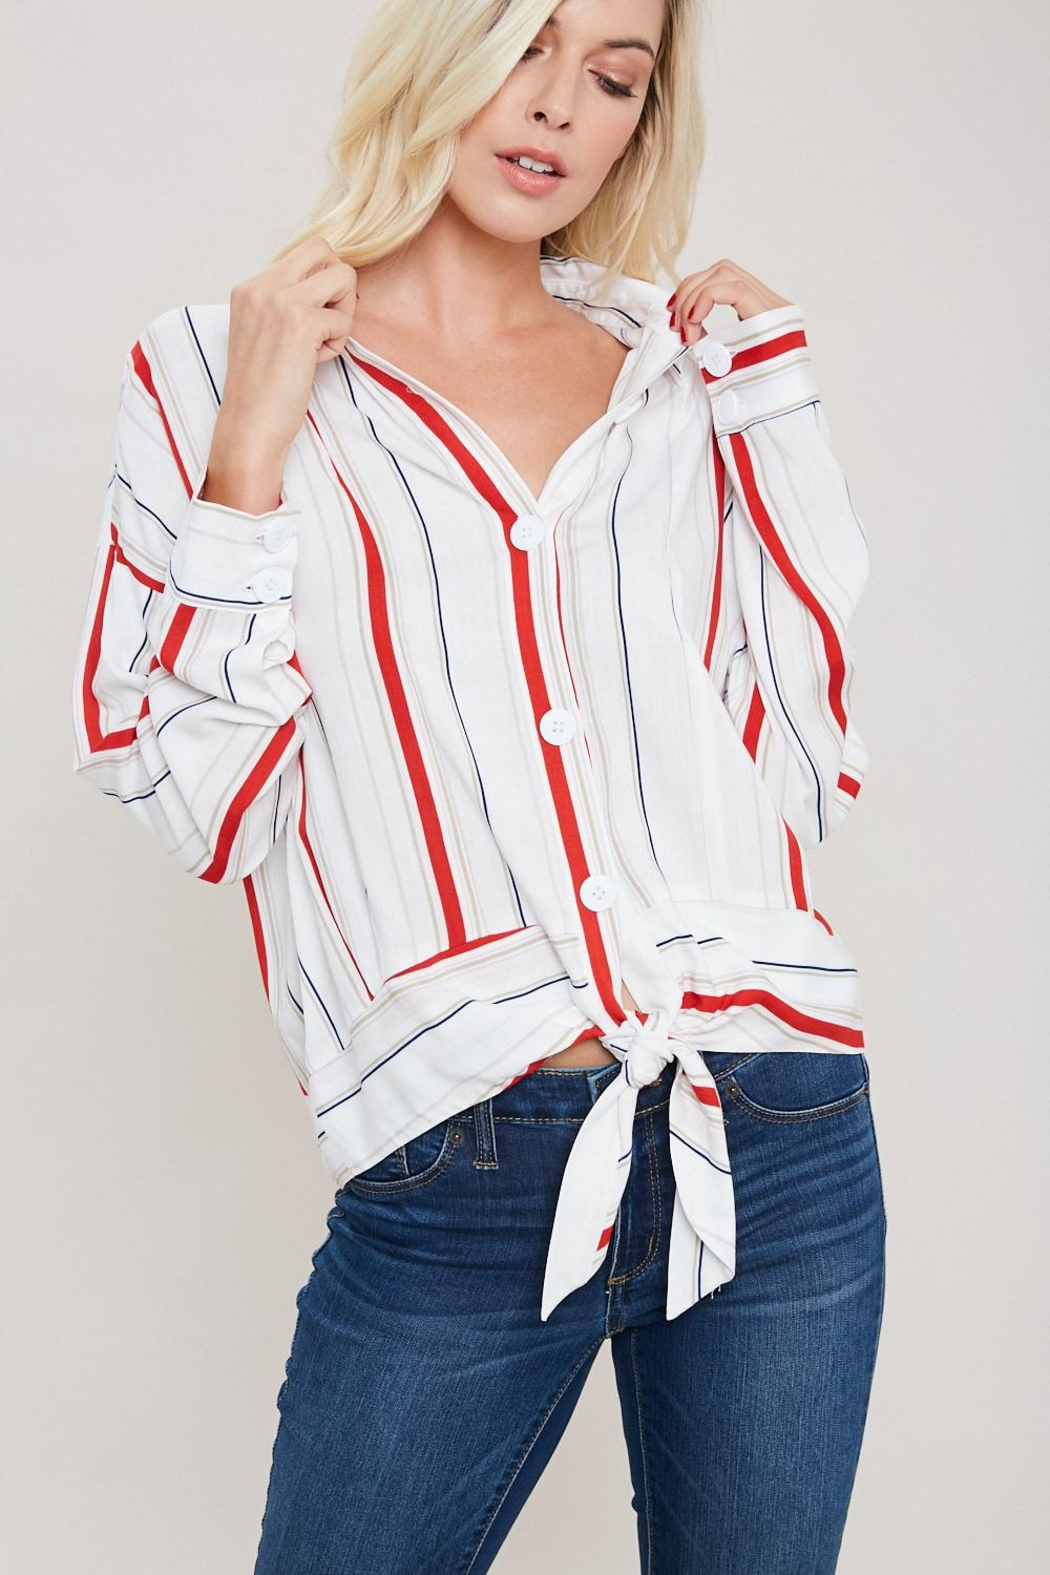 eesome Red And White Button Top - Main Image